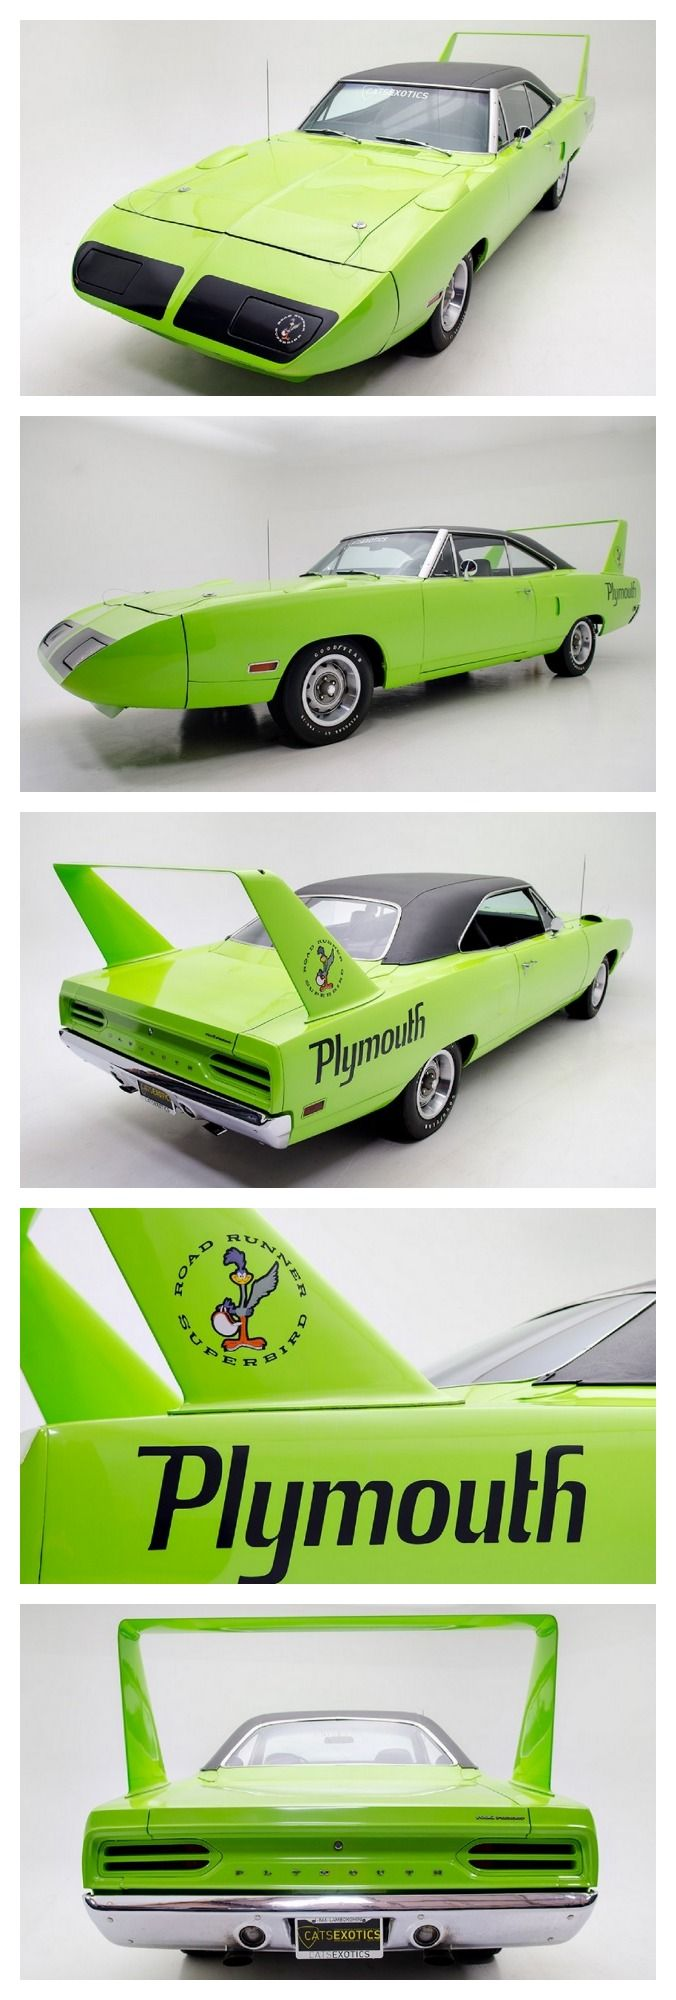 1970 Superbird!  ....Like going fast? Call or click: 1-877-INFRACTION.com (877-463-7228) for local lawyers aggressively defending Traffic Tickets, DUIs and Suspended Licenses throughout Florida